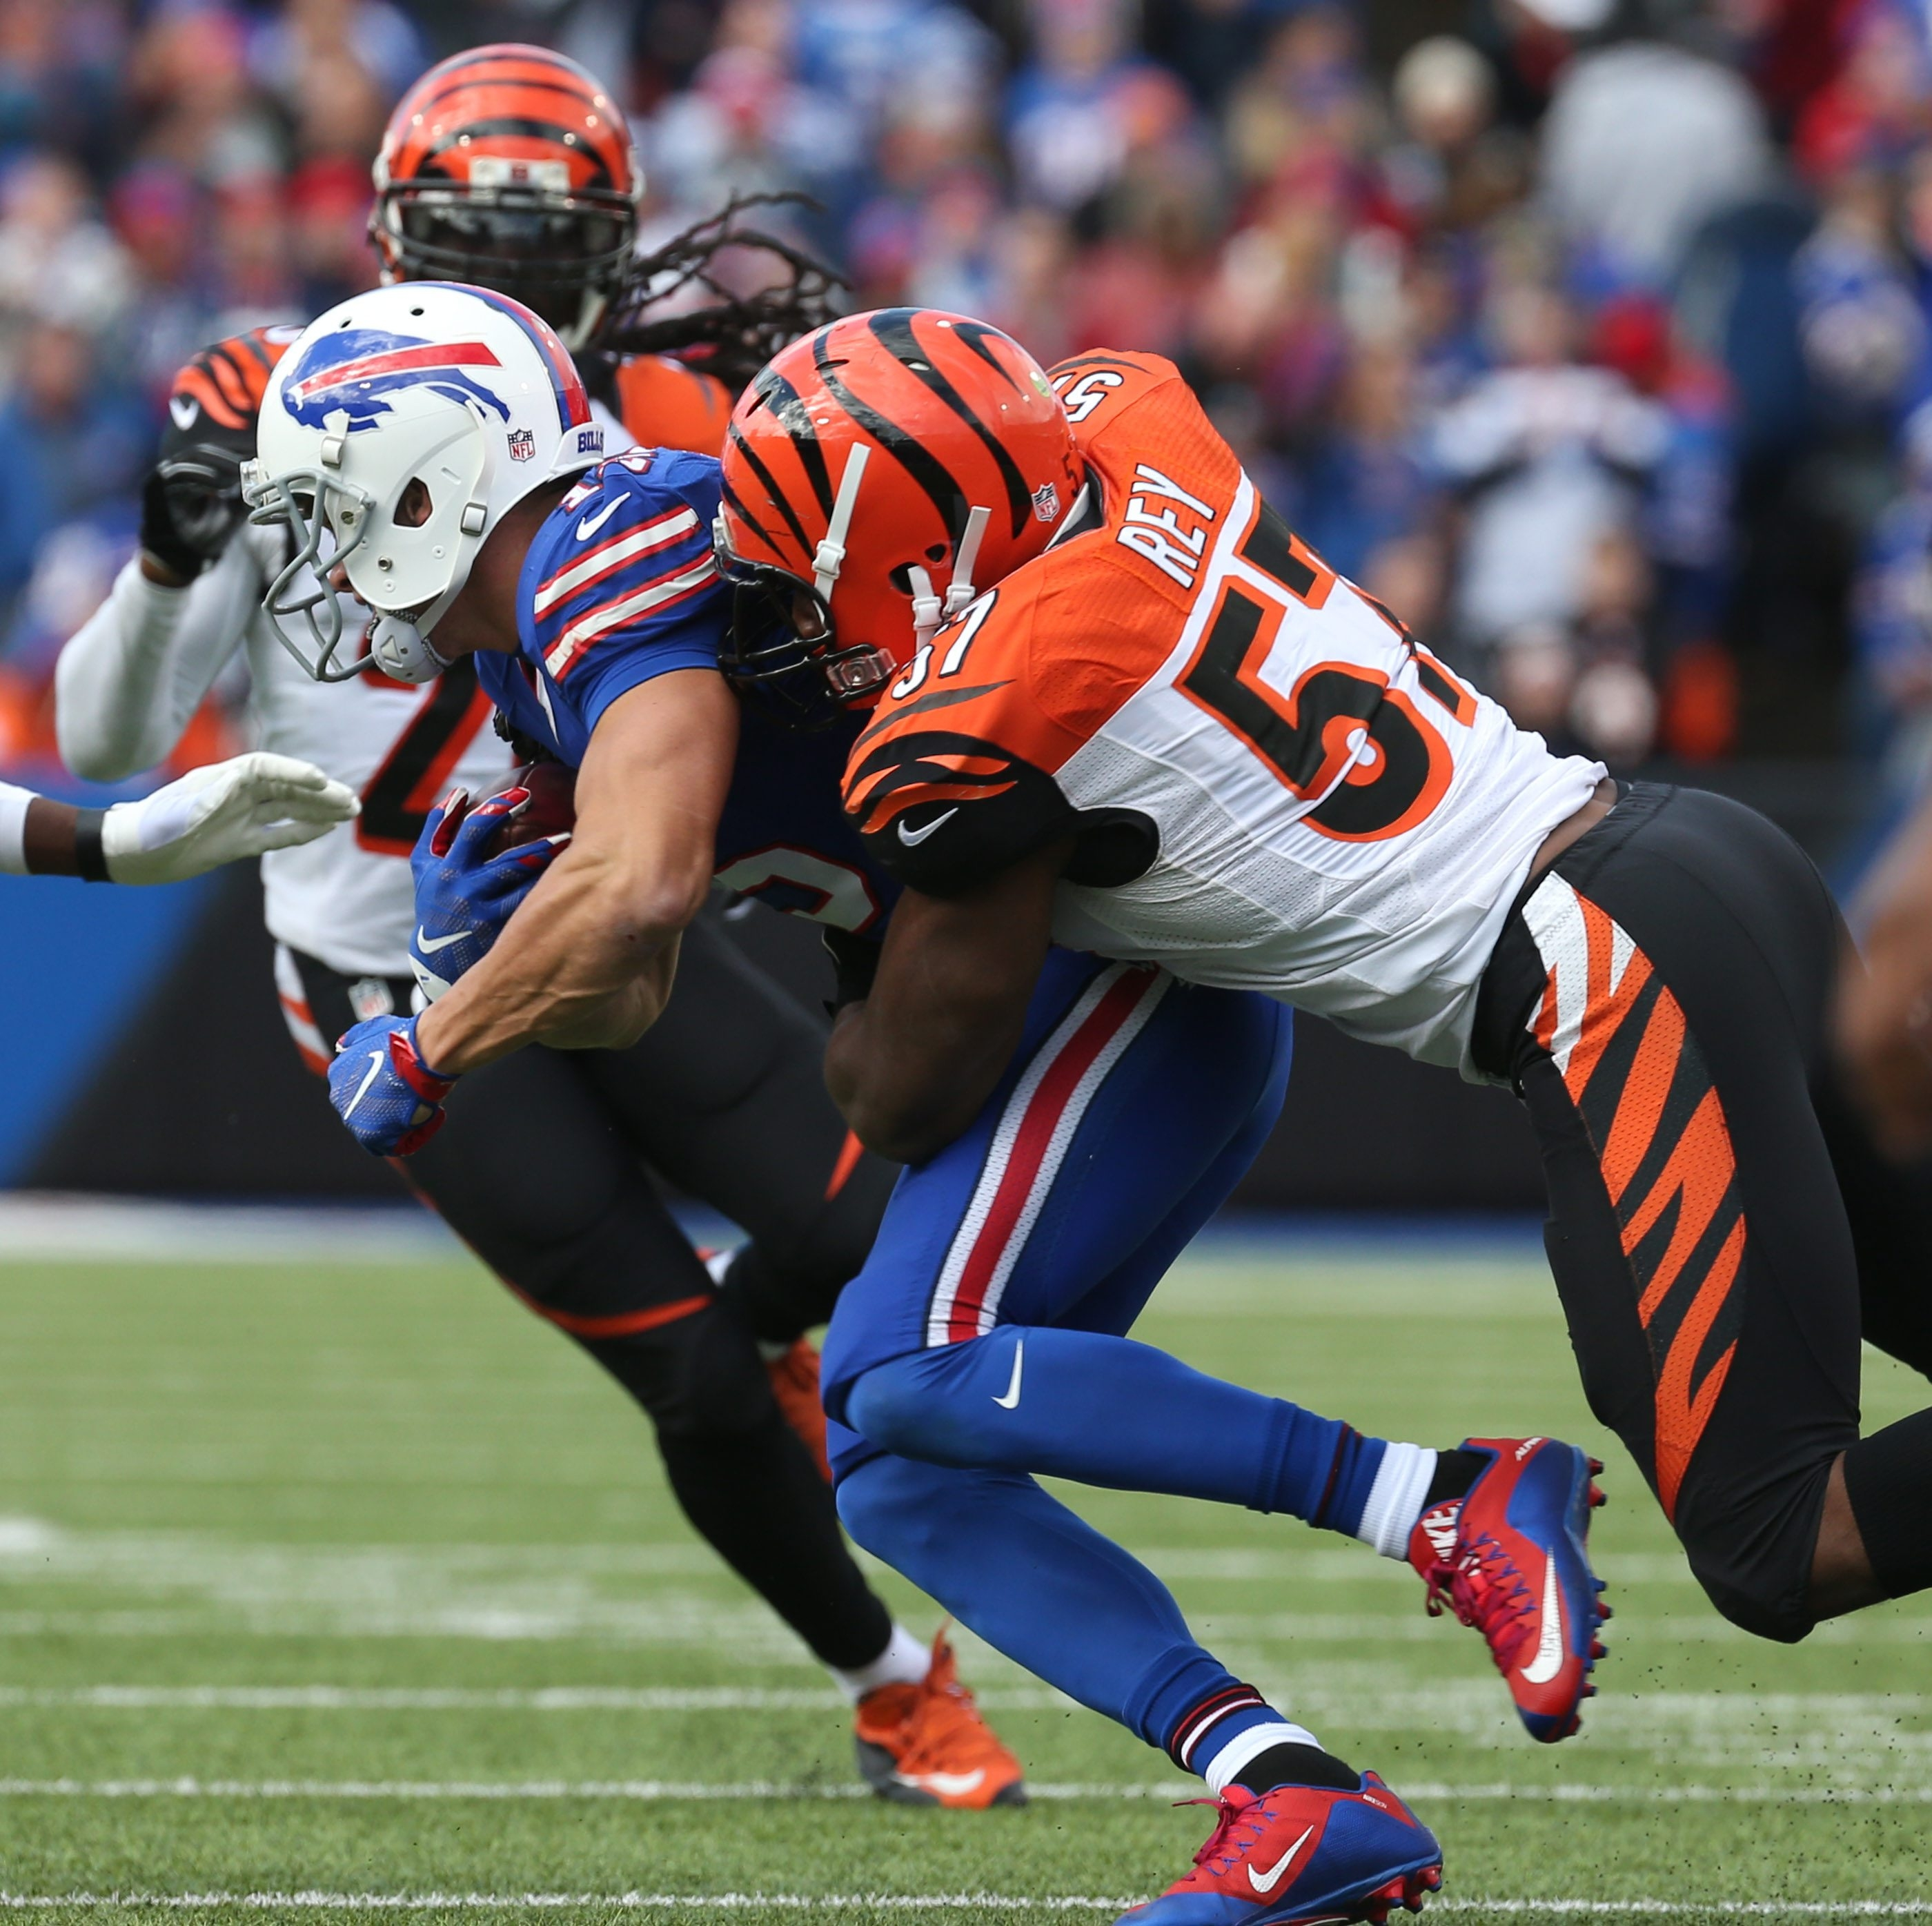 """Bills receiver Chris Hogan says he's ready """"to go out there with all the confidence in the world and try to make plays for this team."""""""